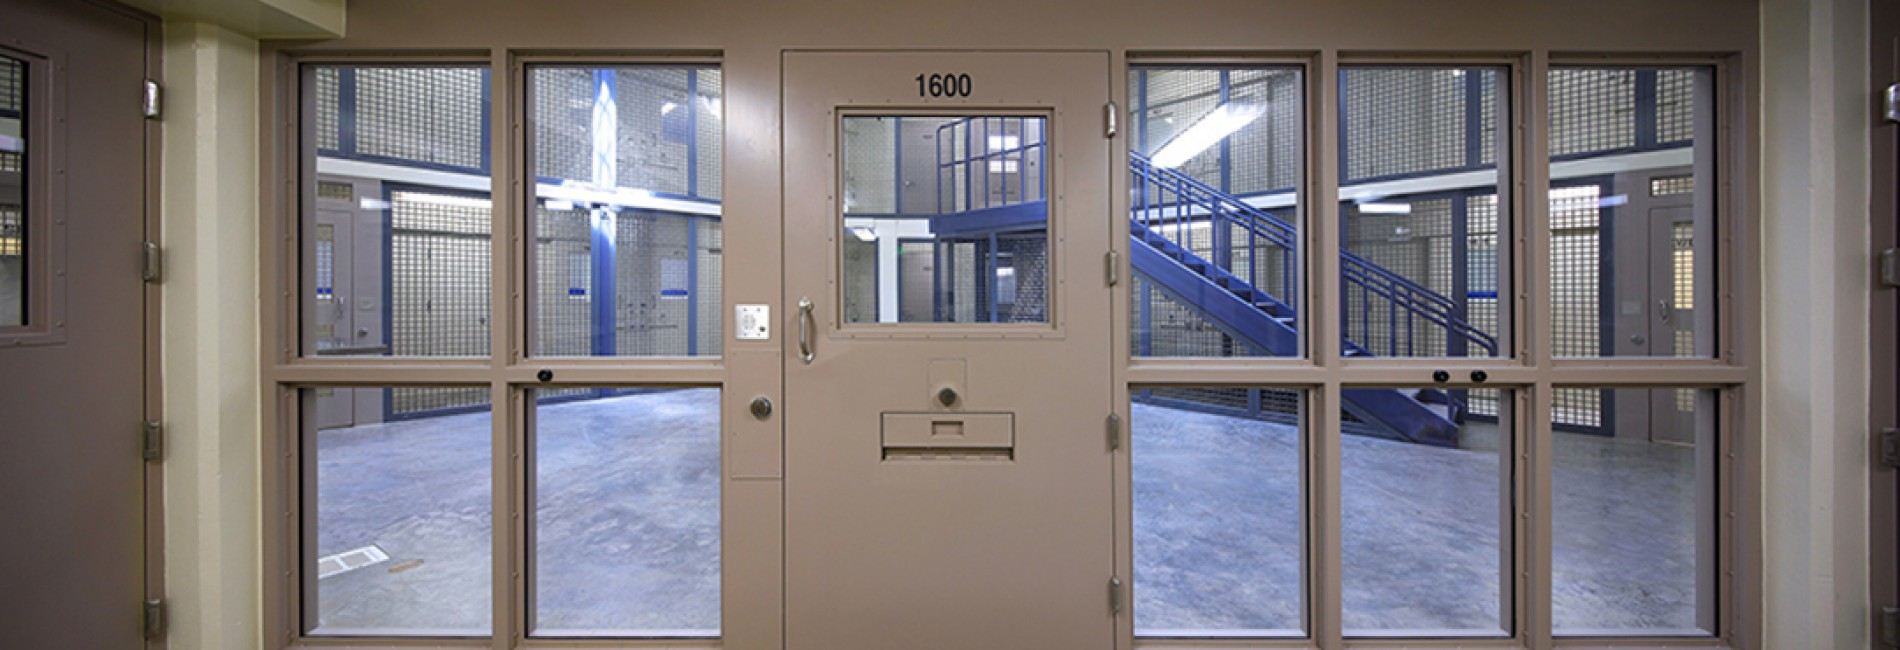 idaho ada county jail-Photo-3